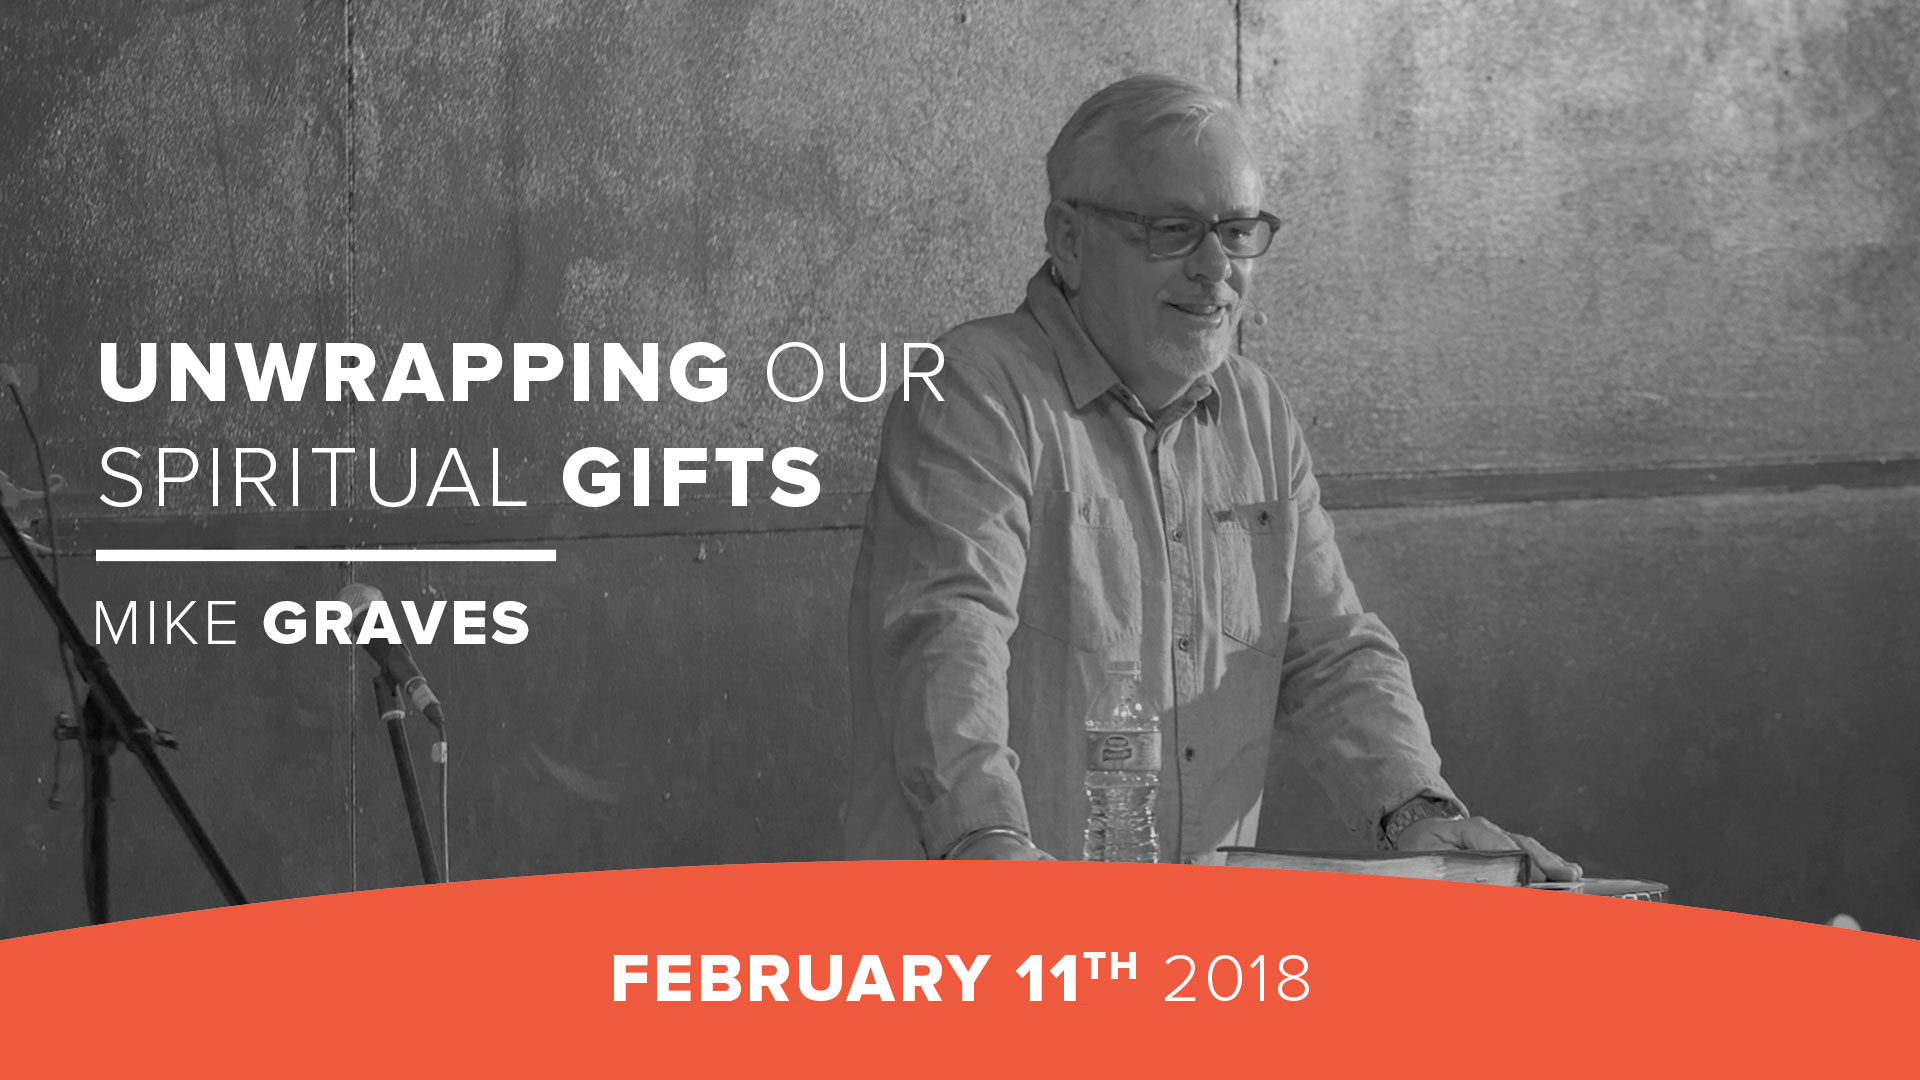 Unwrapping our Spiritual Gifts